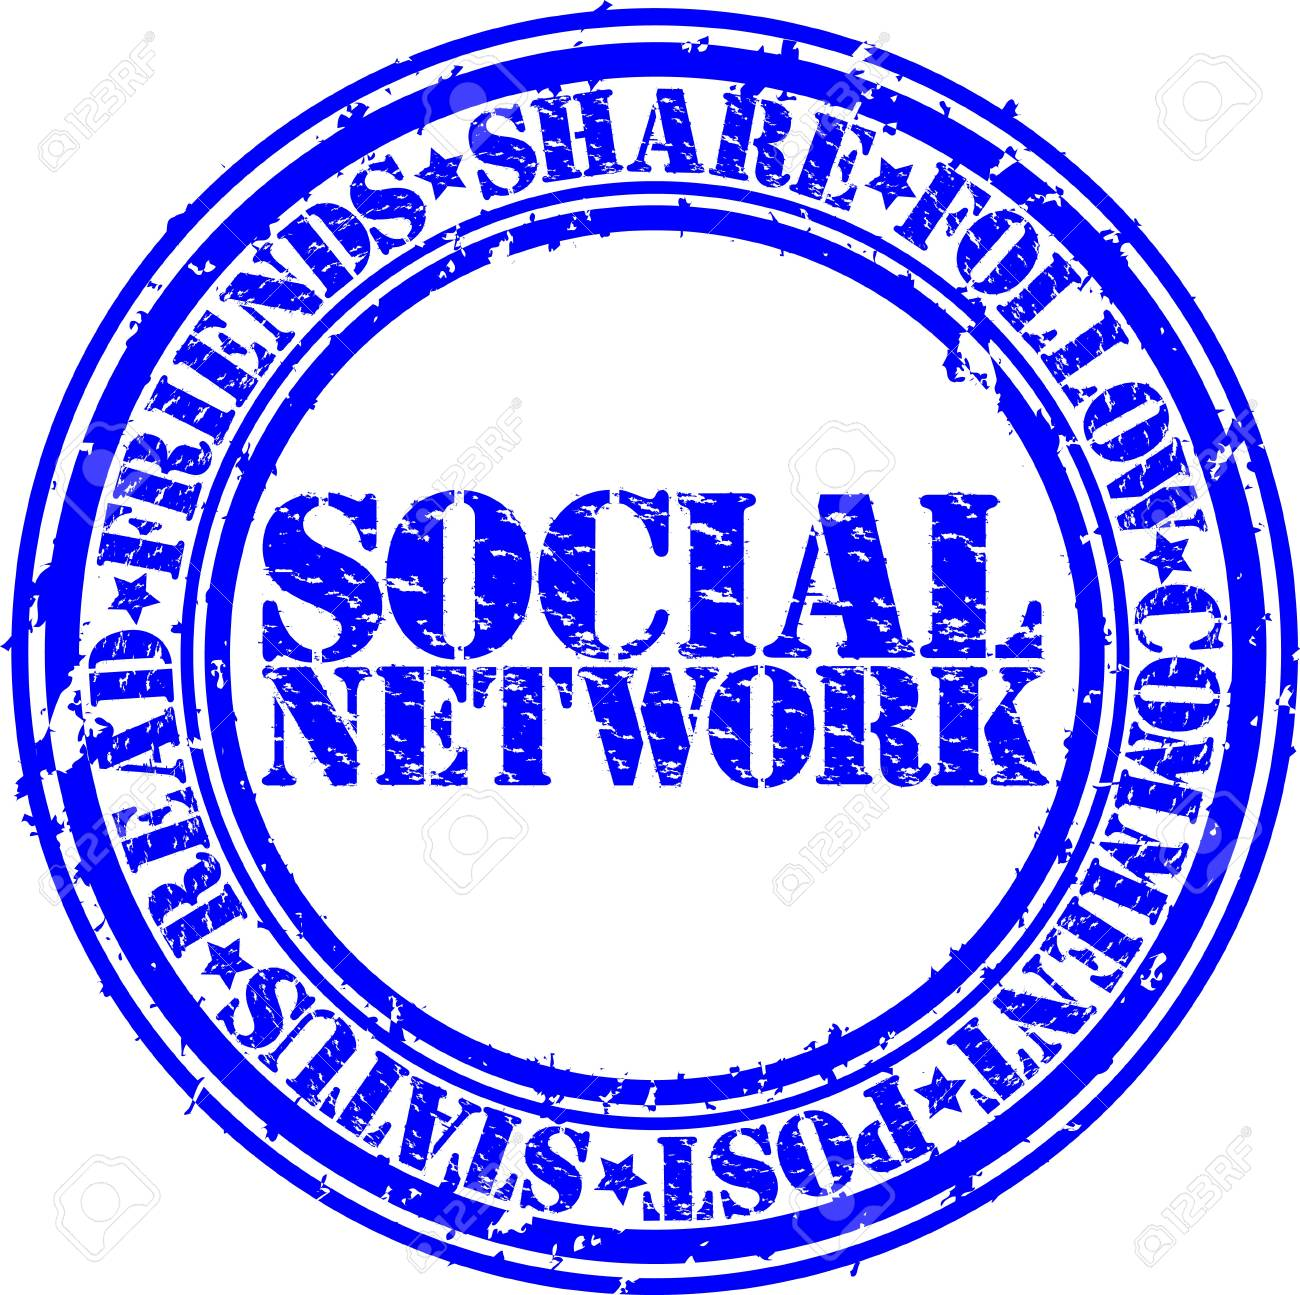 Grunge social network rubber stamp,vector illustration Stock Vector - 14634695